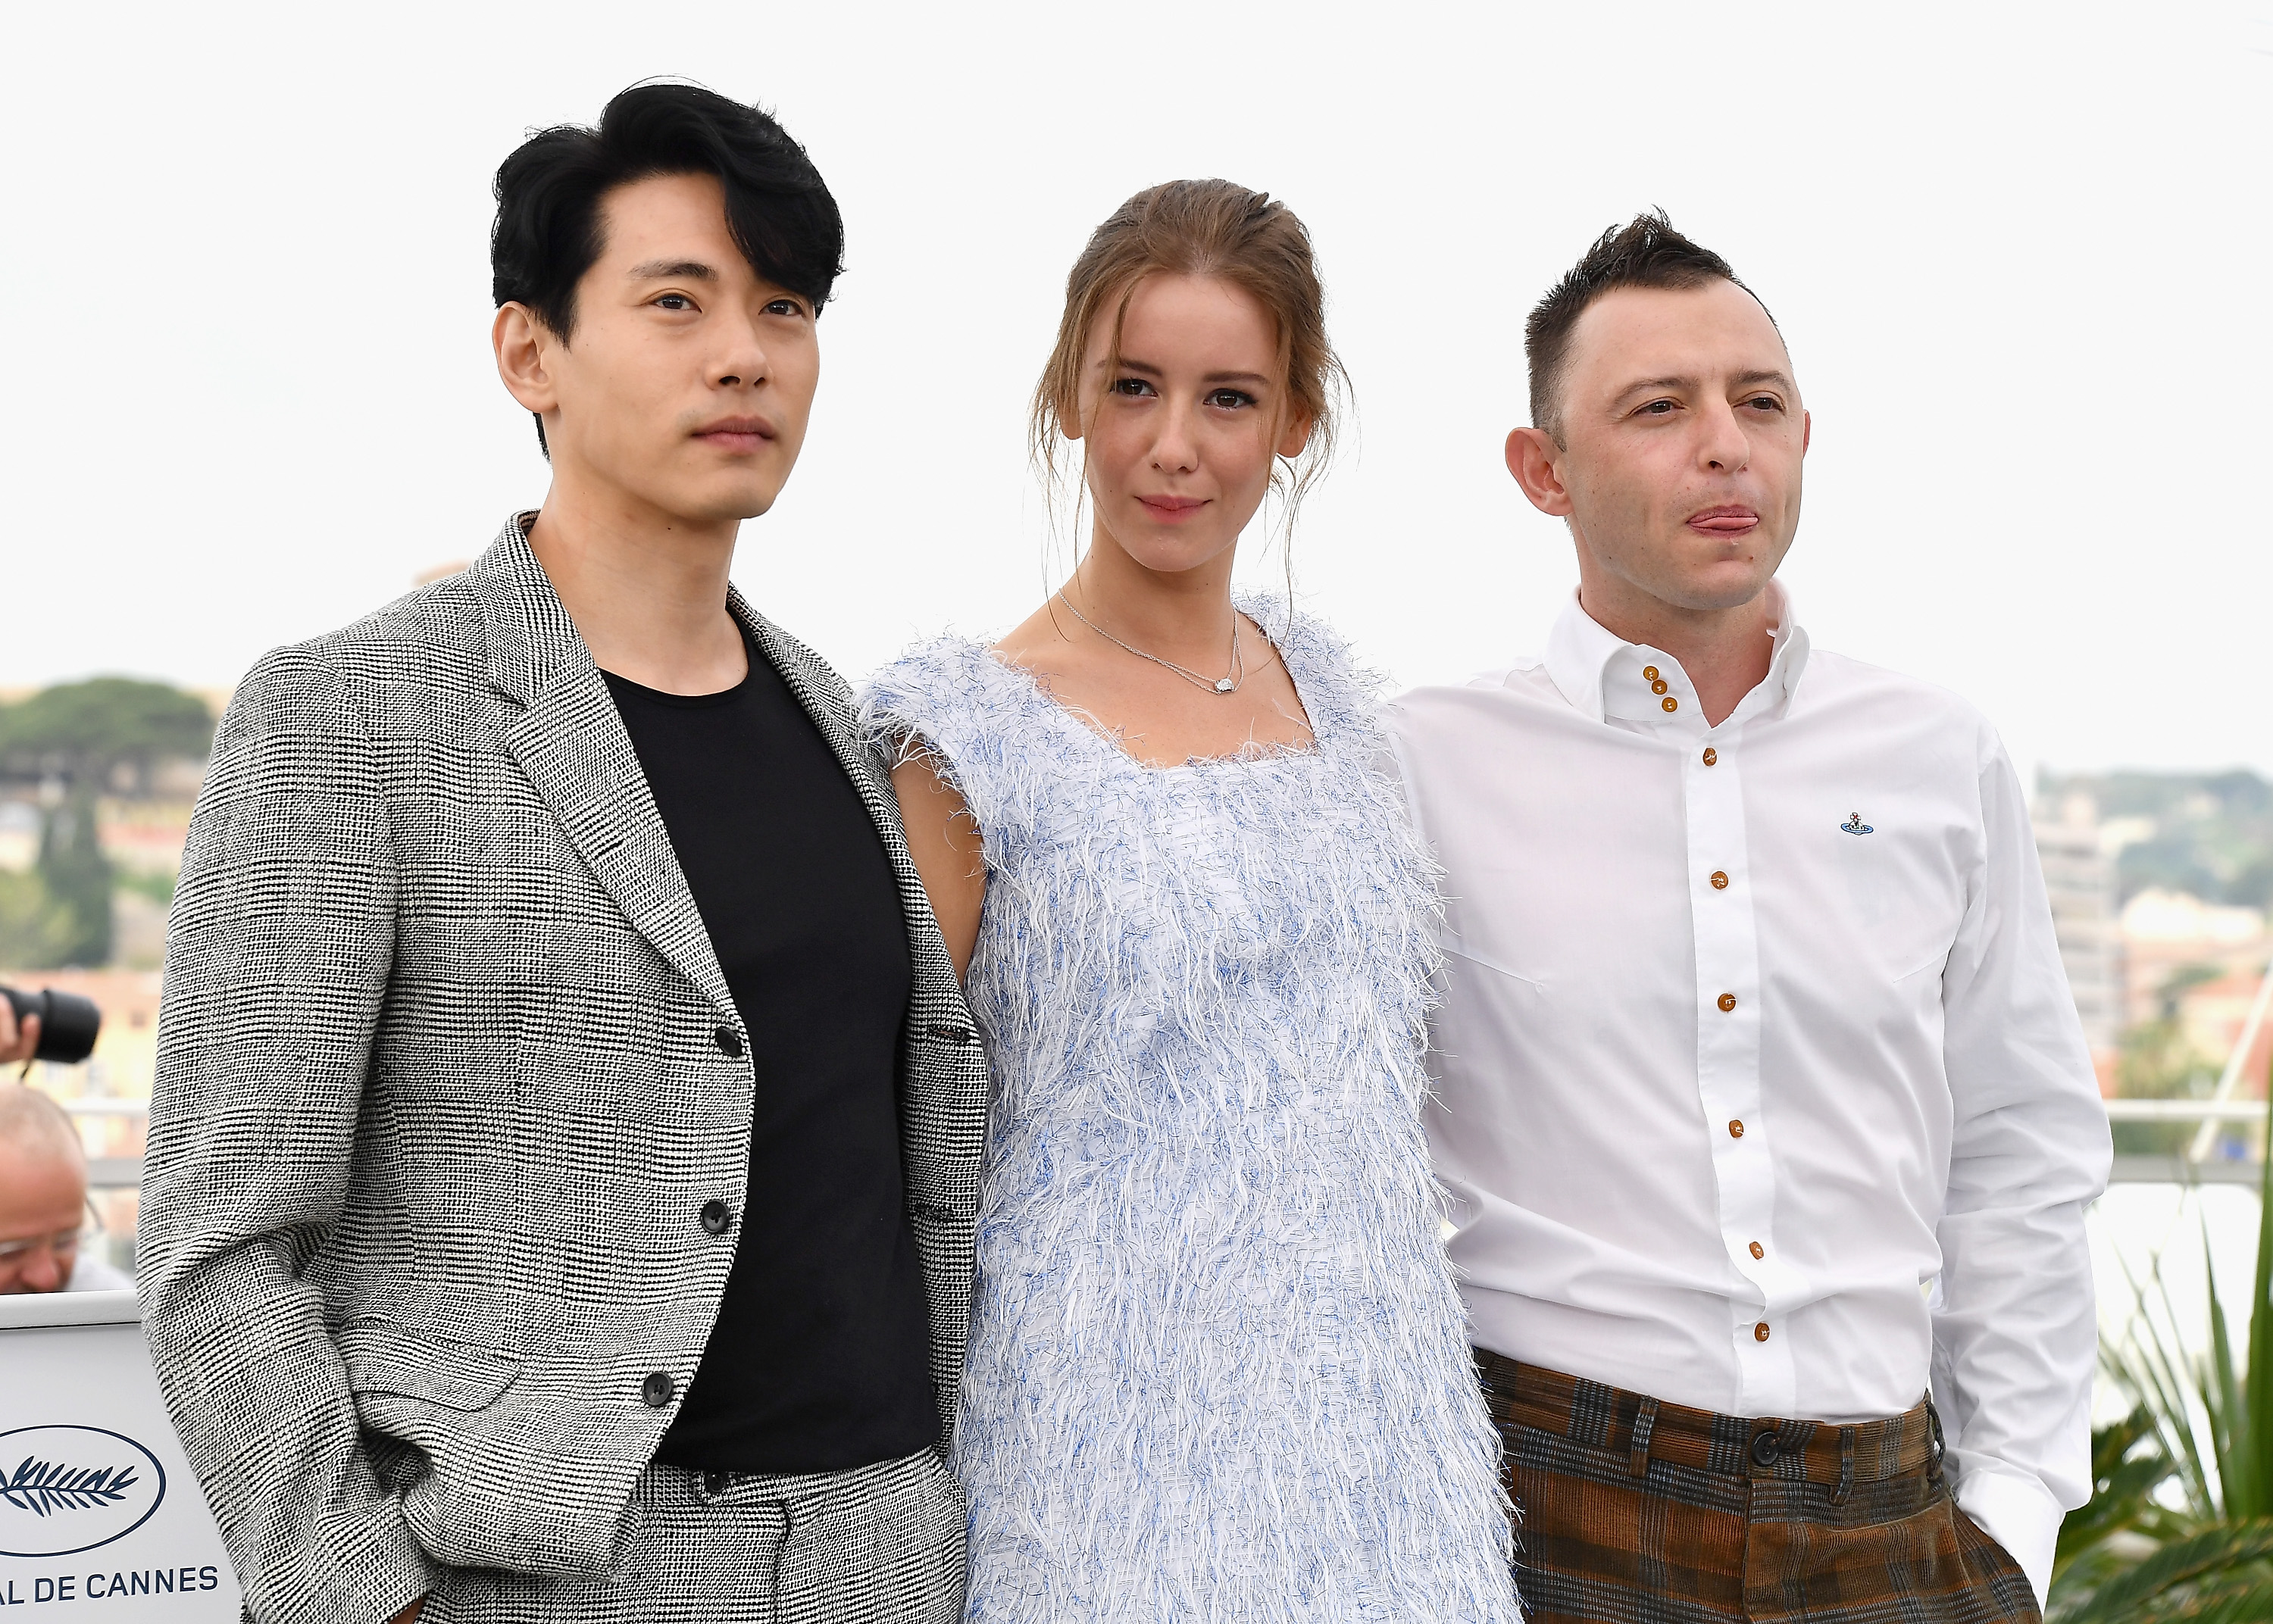 Teo Yoo, Irina Starshenbaum and Roma Zver attend the photocall for  Leto   during the 71st annual Cannes Film Festival on May 10, 2018 in Cannes, France.